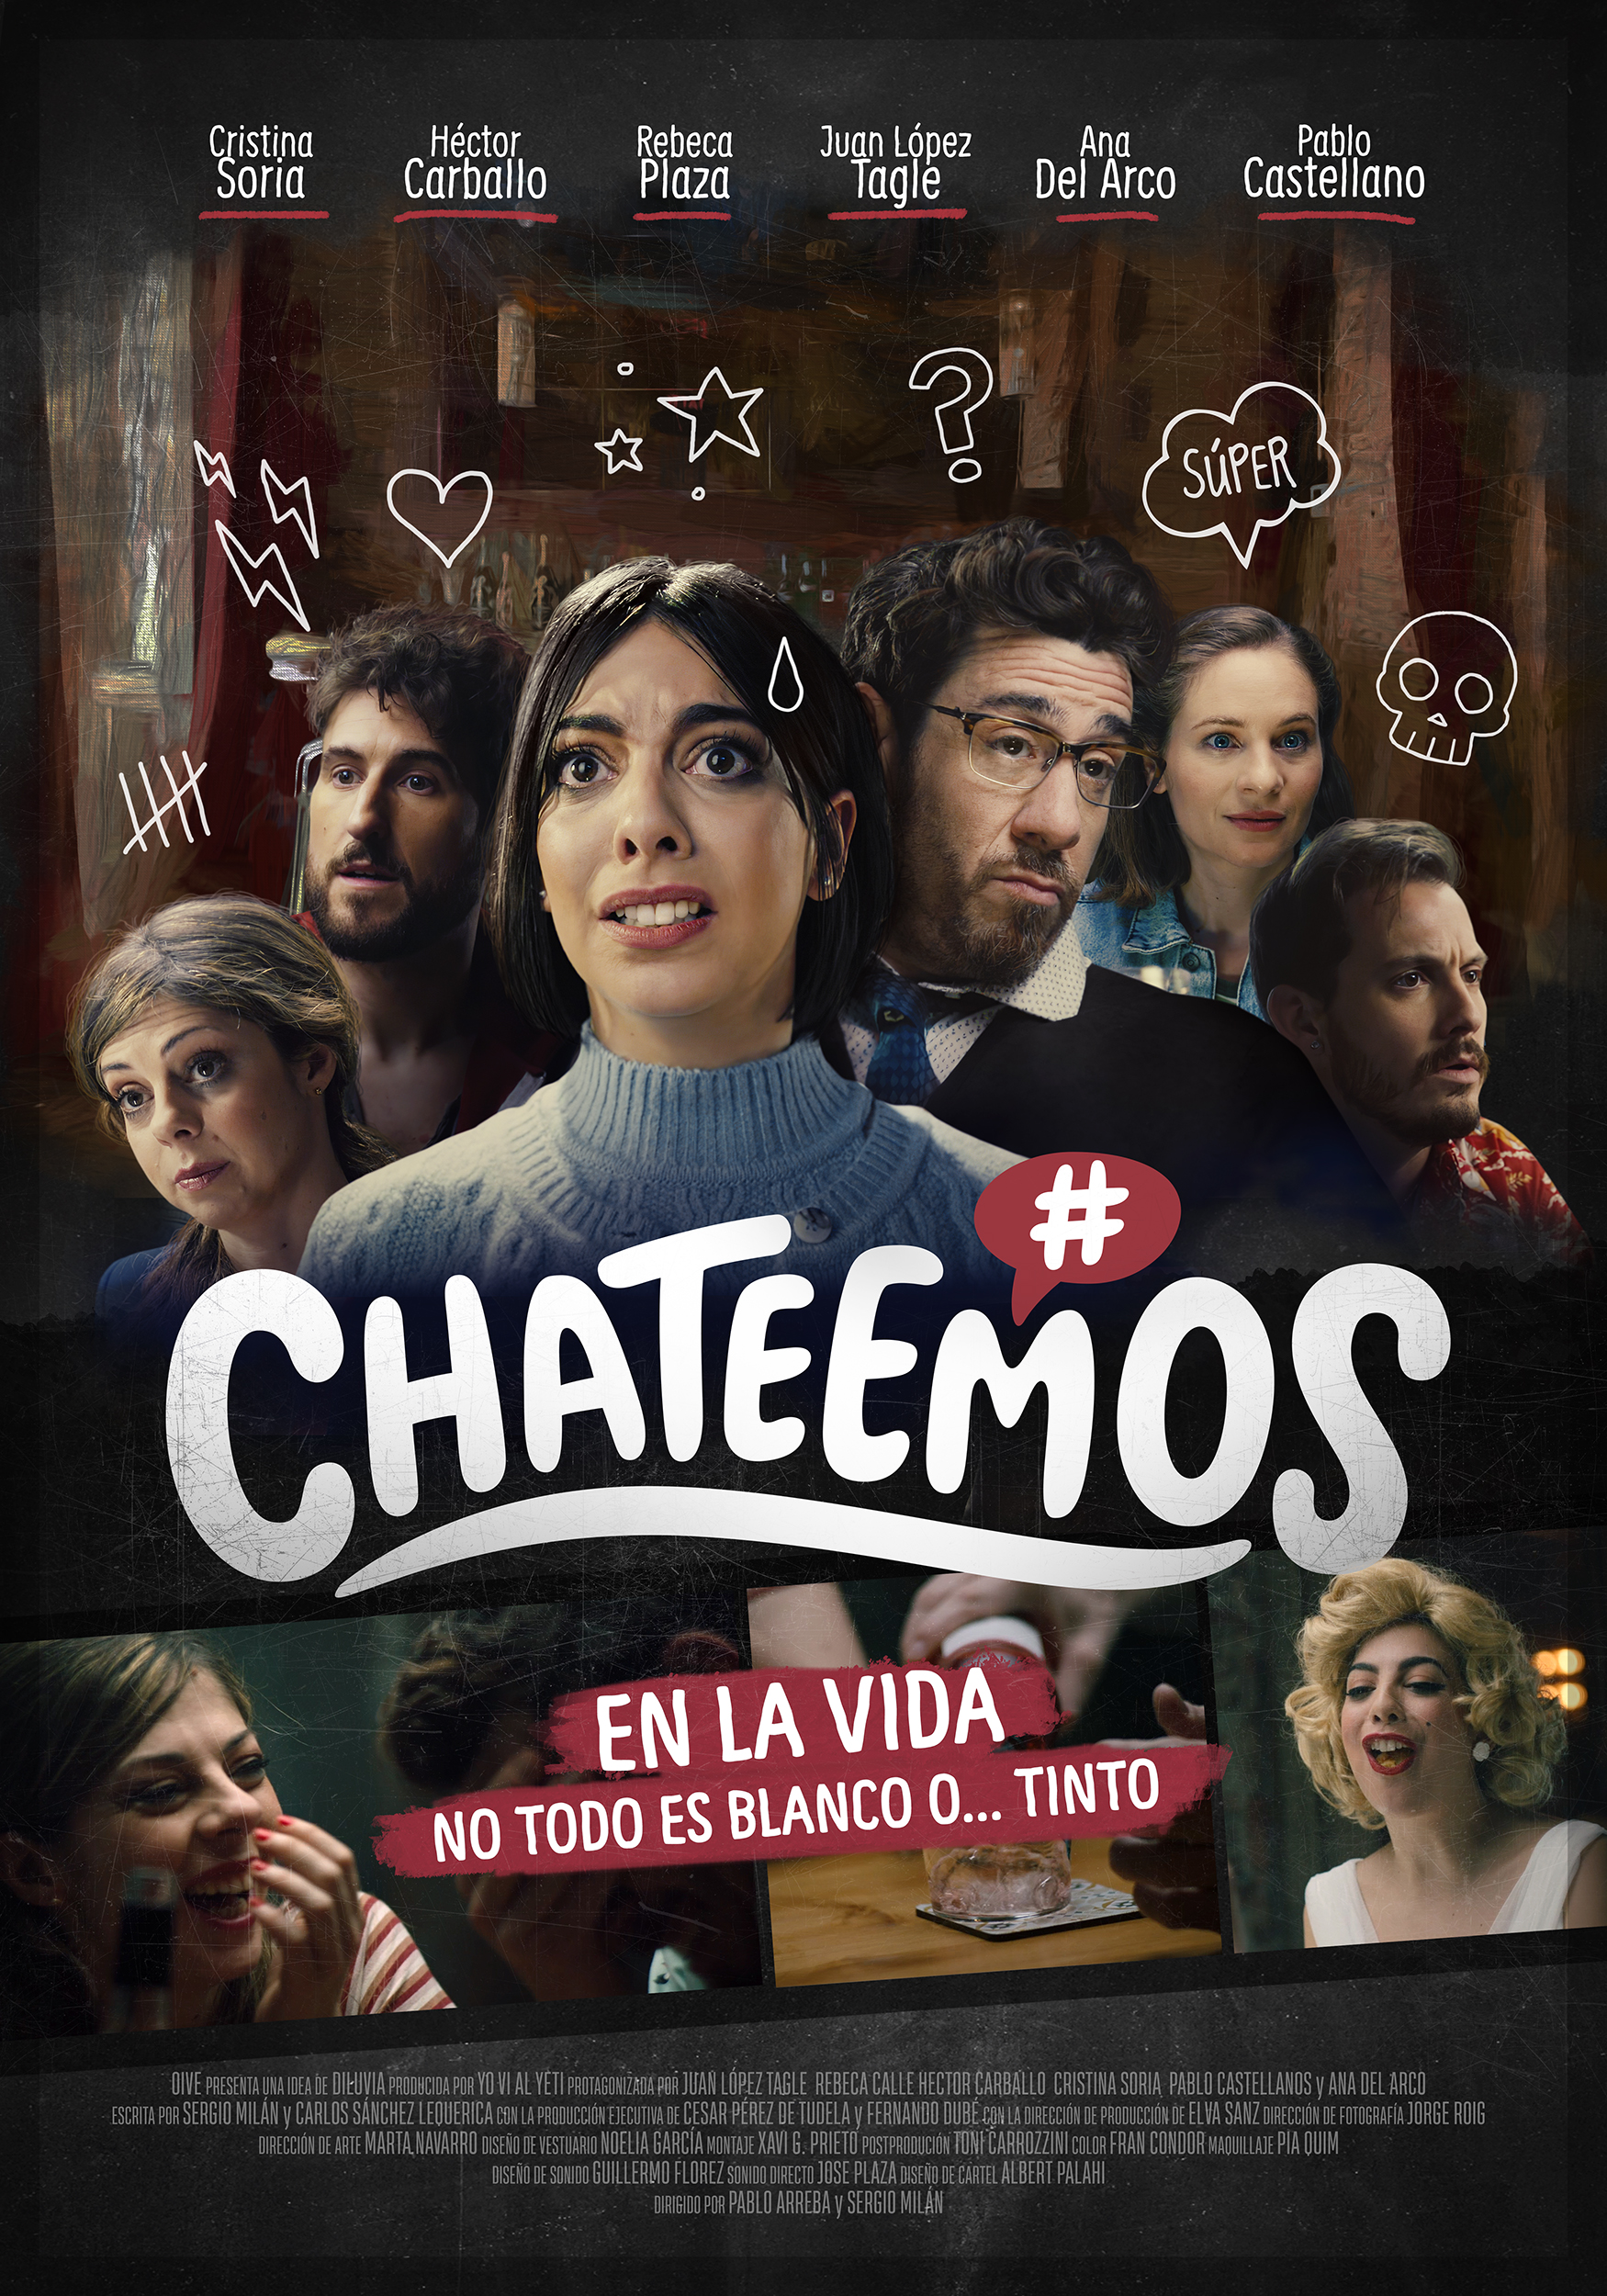 Chateemos_Cartel_1_LowRes-1